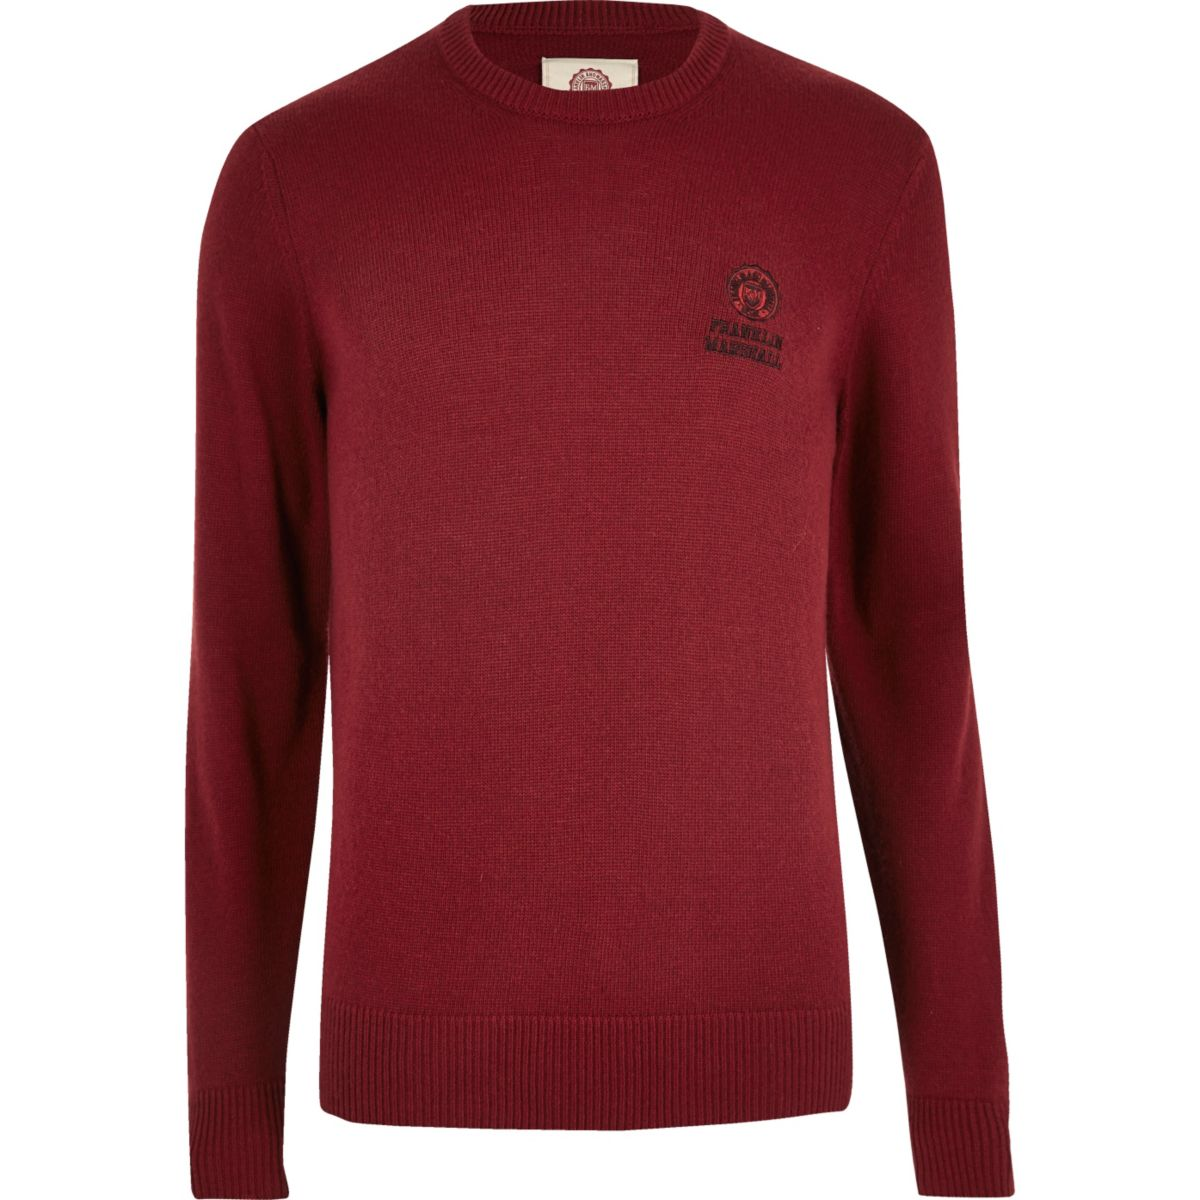 Red Franklin & Marshall sweater